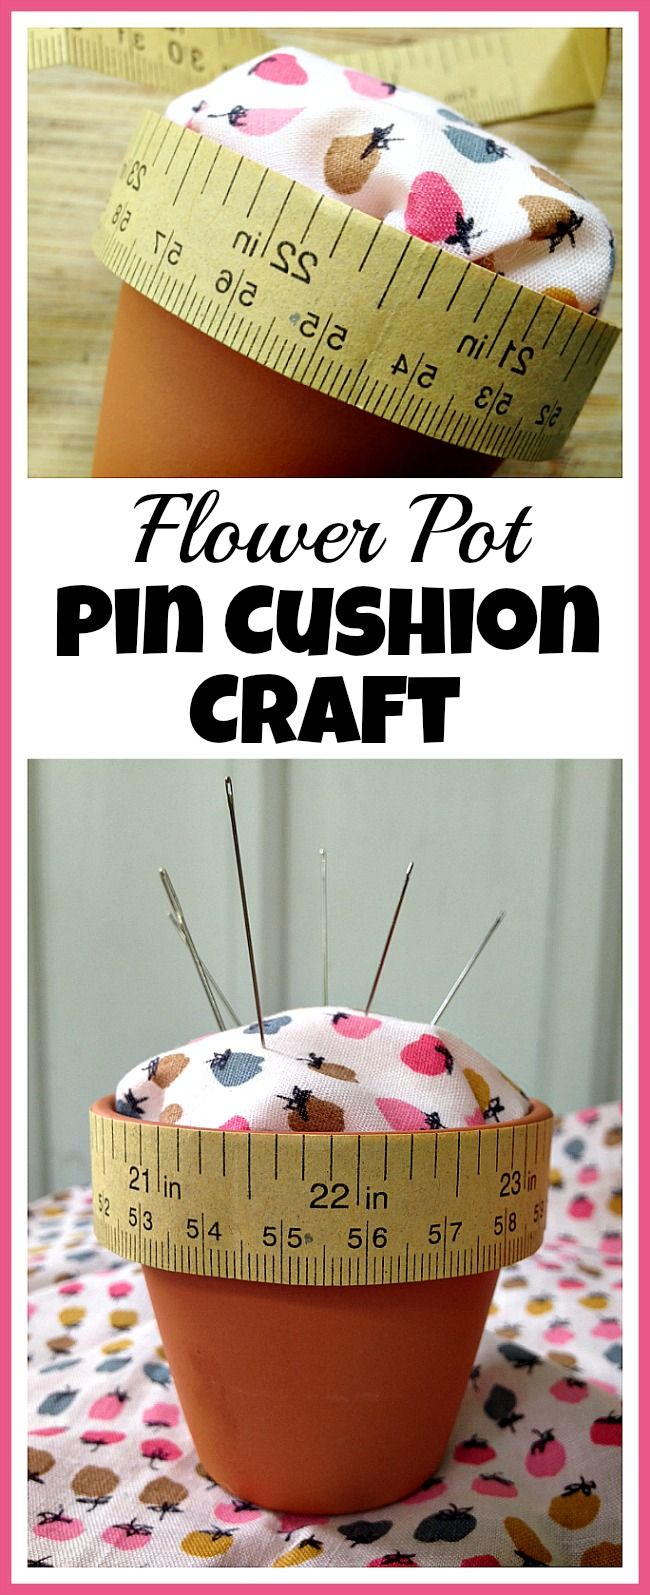 Marvelous Flower Pot Pin Cushion Craft Great Pictures